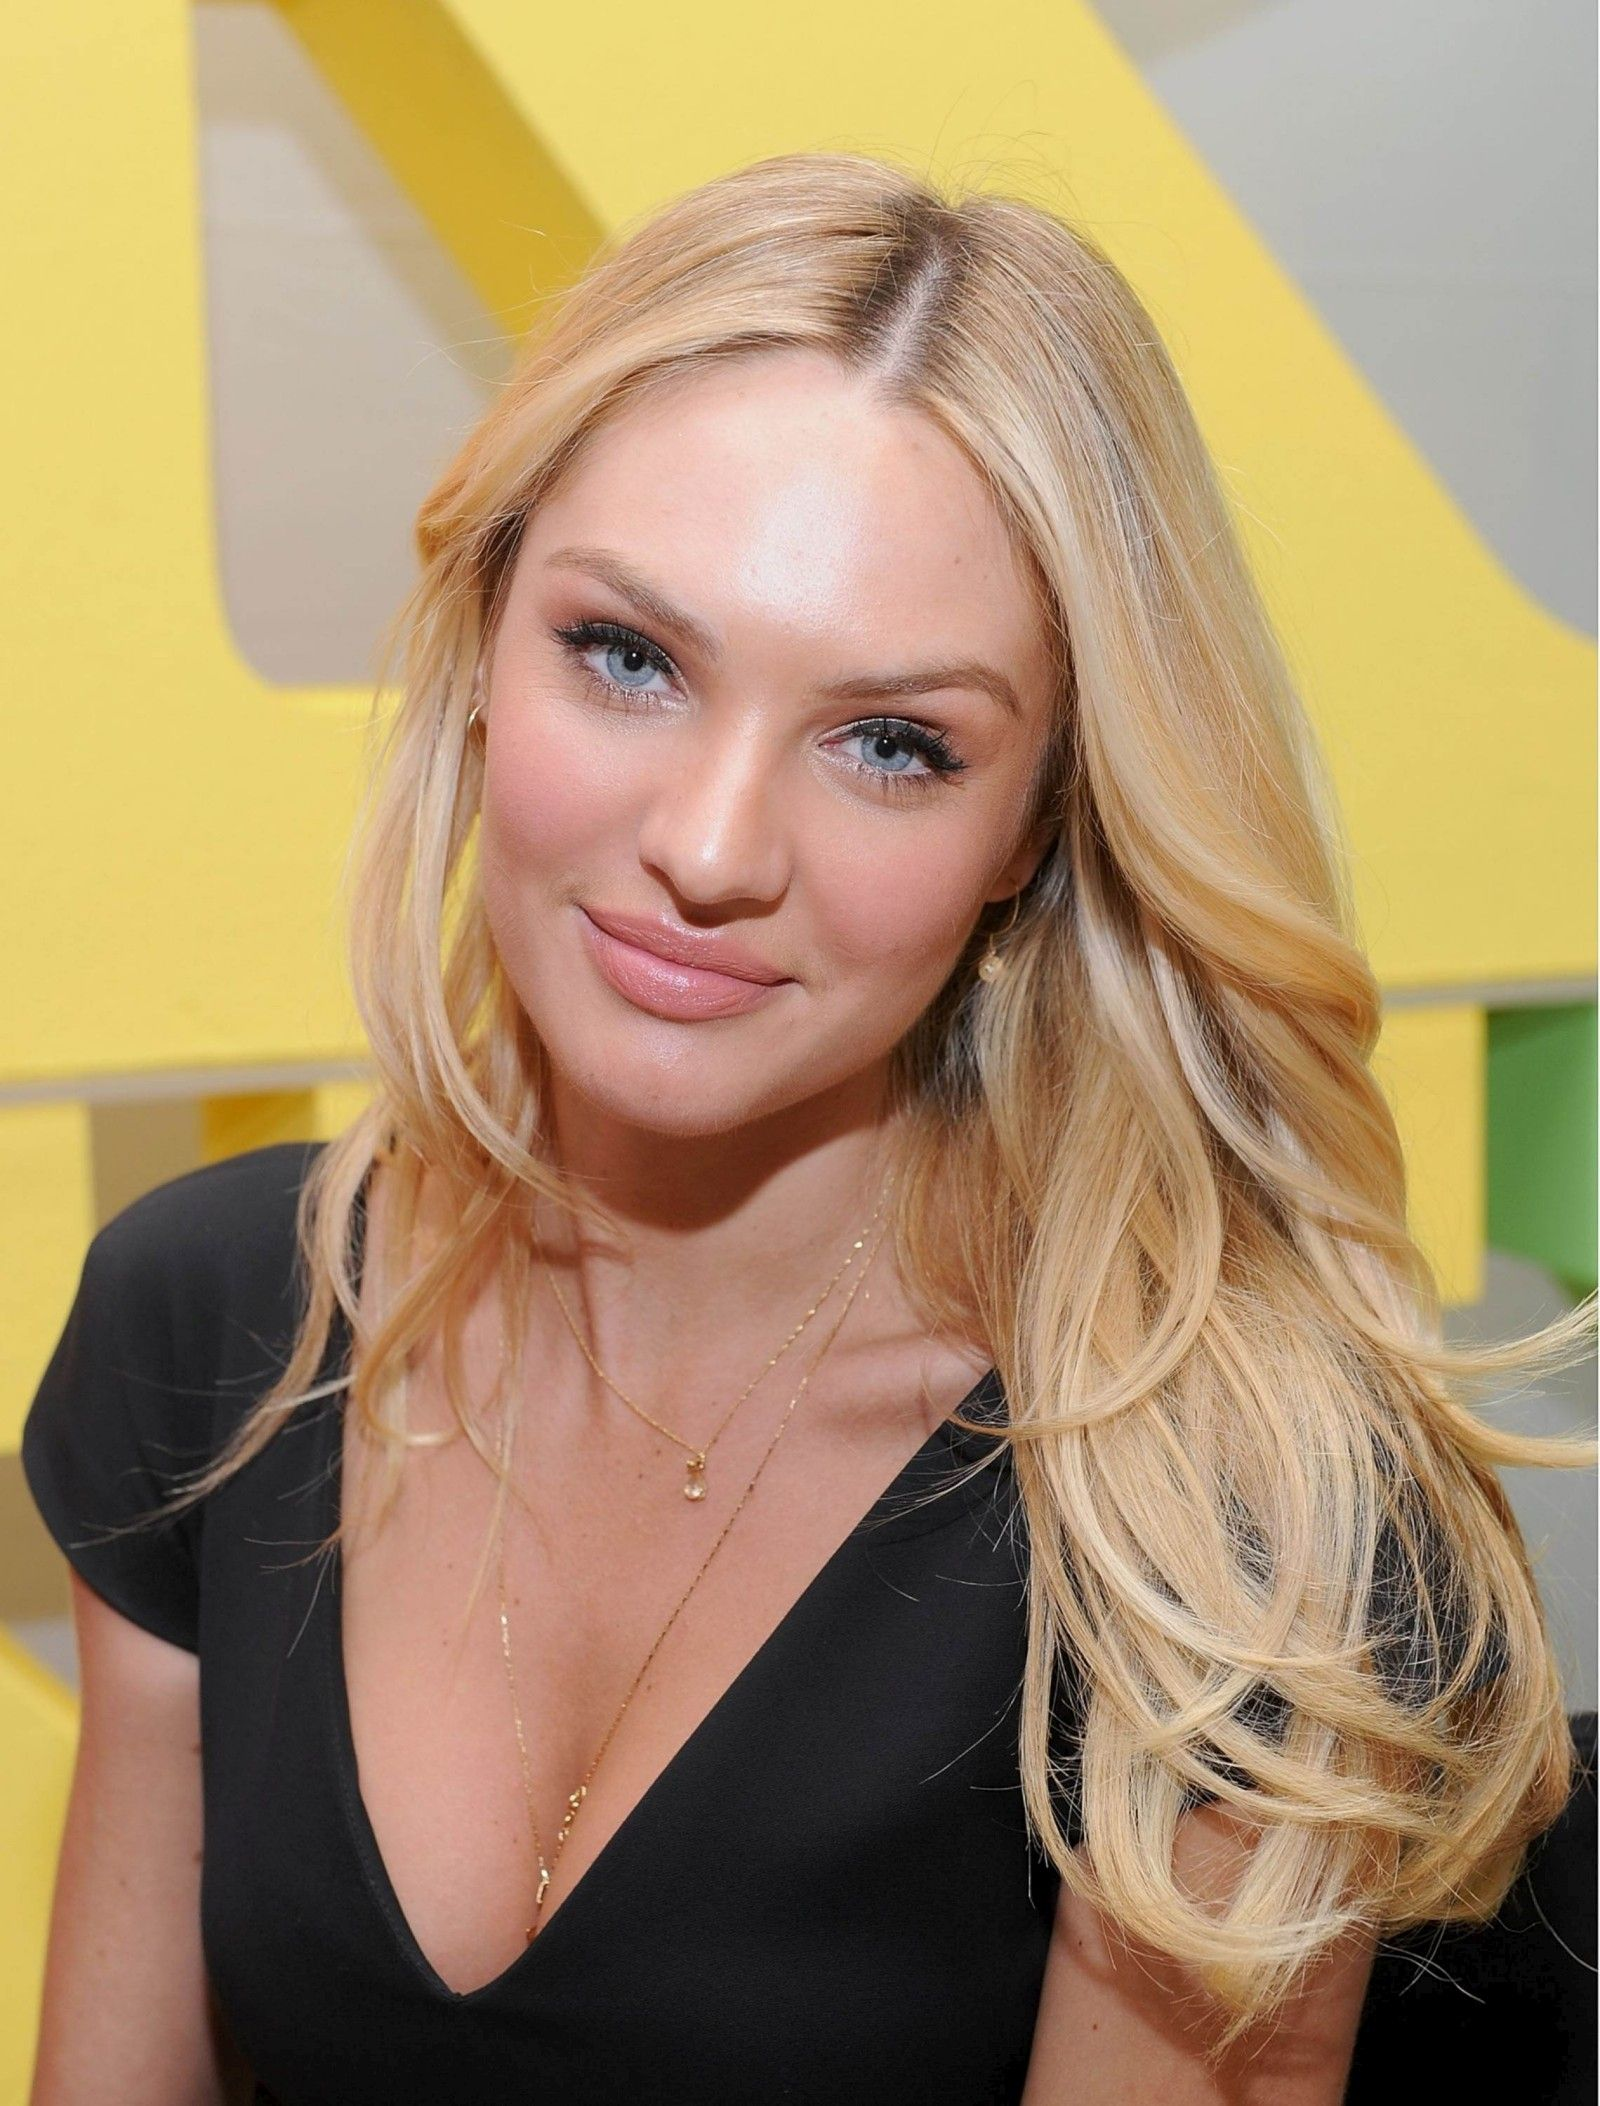 Candice Swanepoel Net Worth, Family, Husband And Biography 11